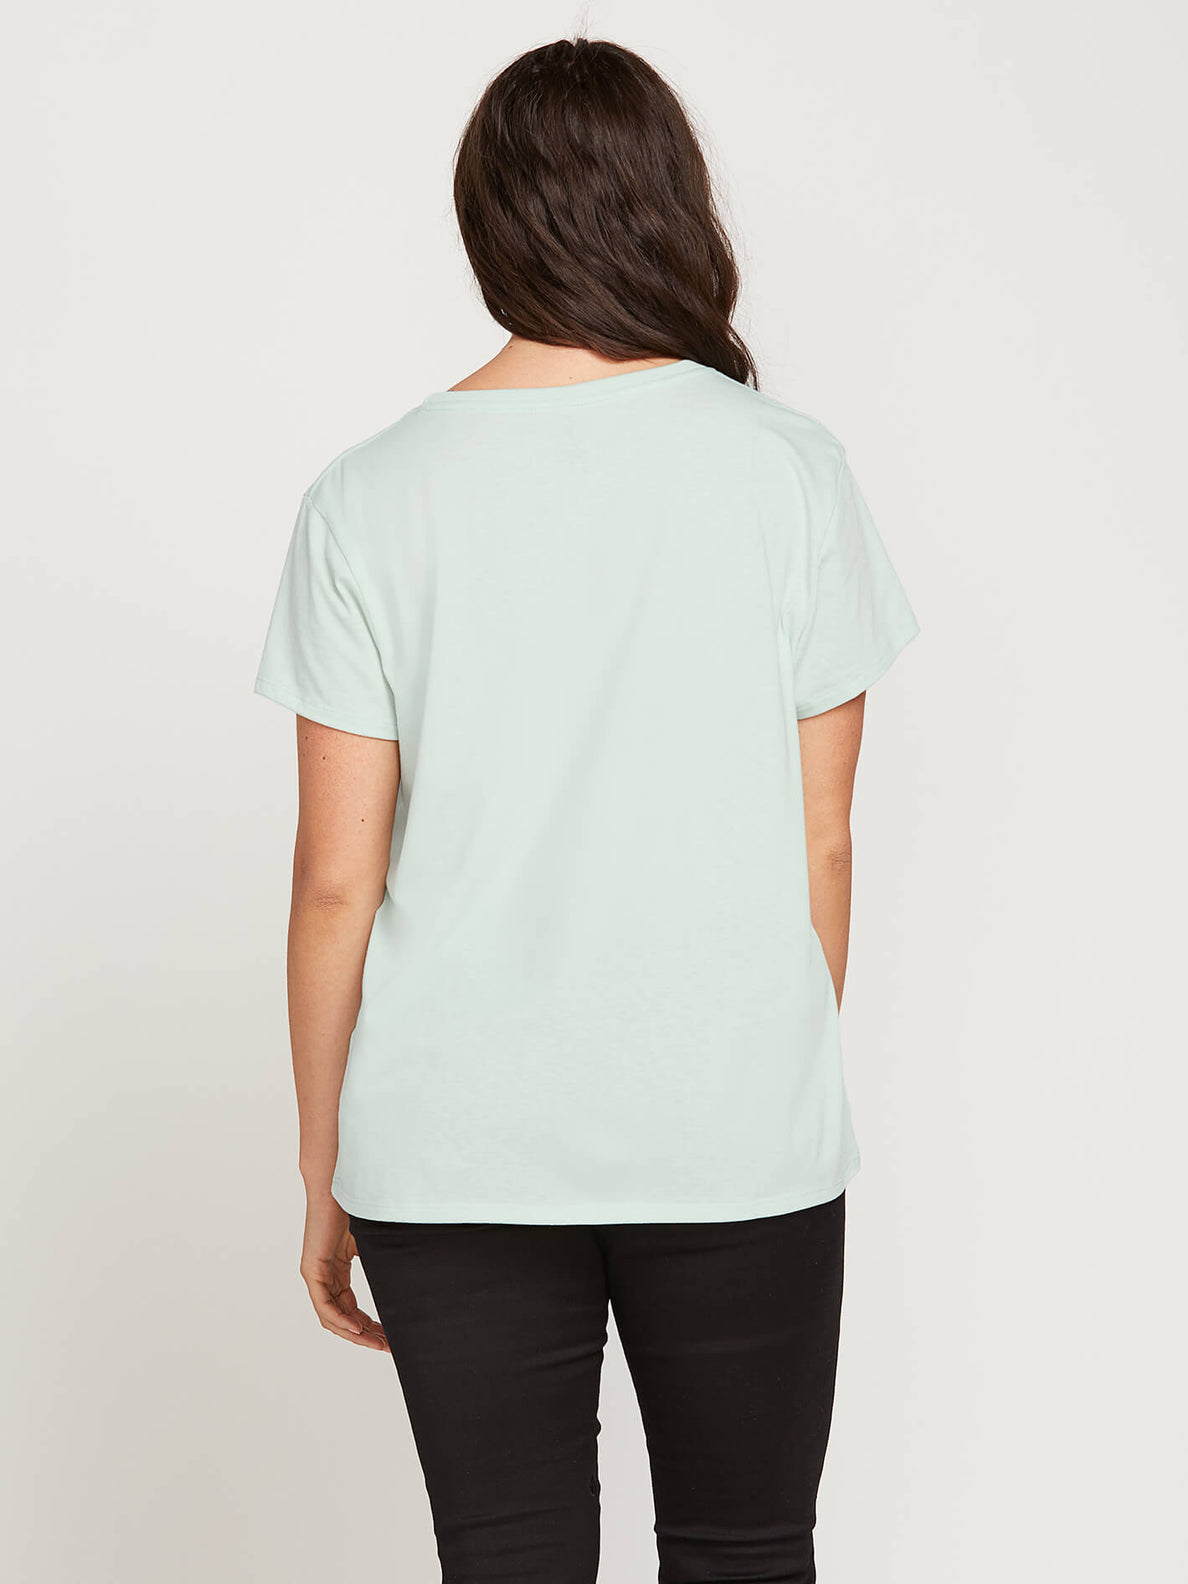 Easy Babe Rad 2 Tee In Mint, Back Extended Size View